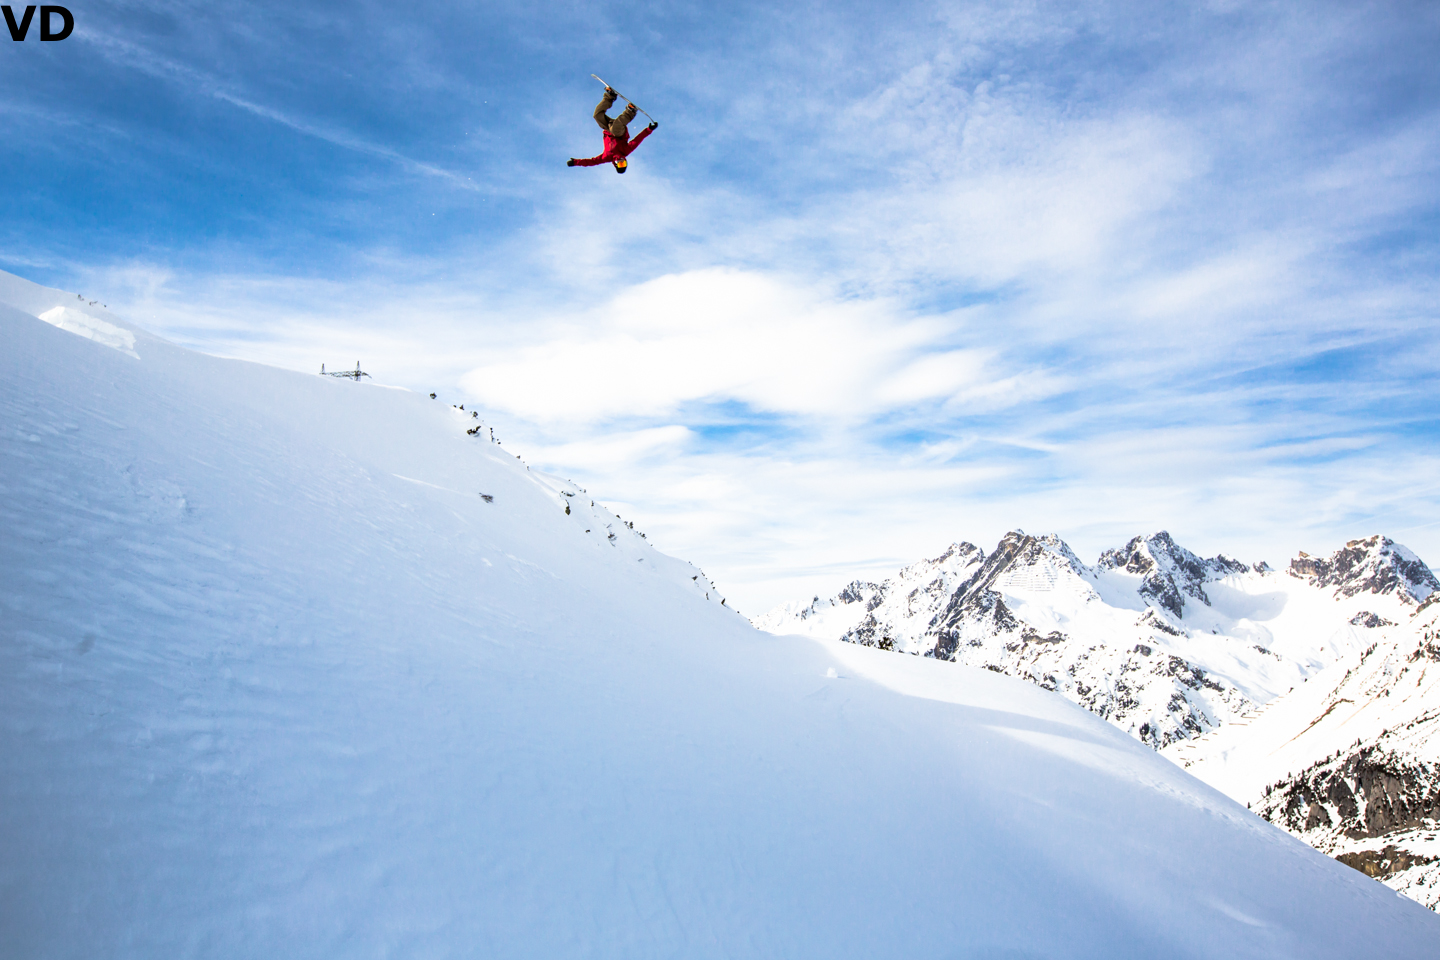 Torgeir Bergrem with a super corked frontside 5. Photo: Vernon Deck